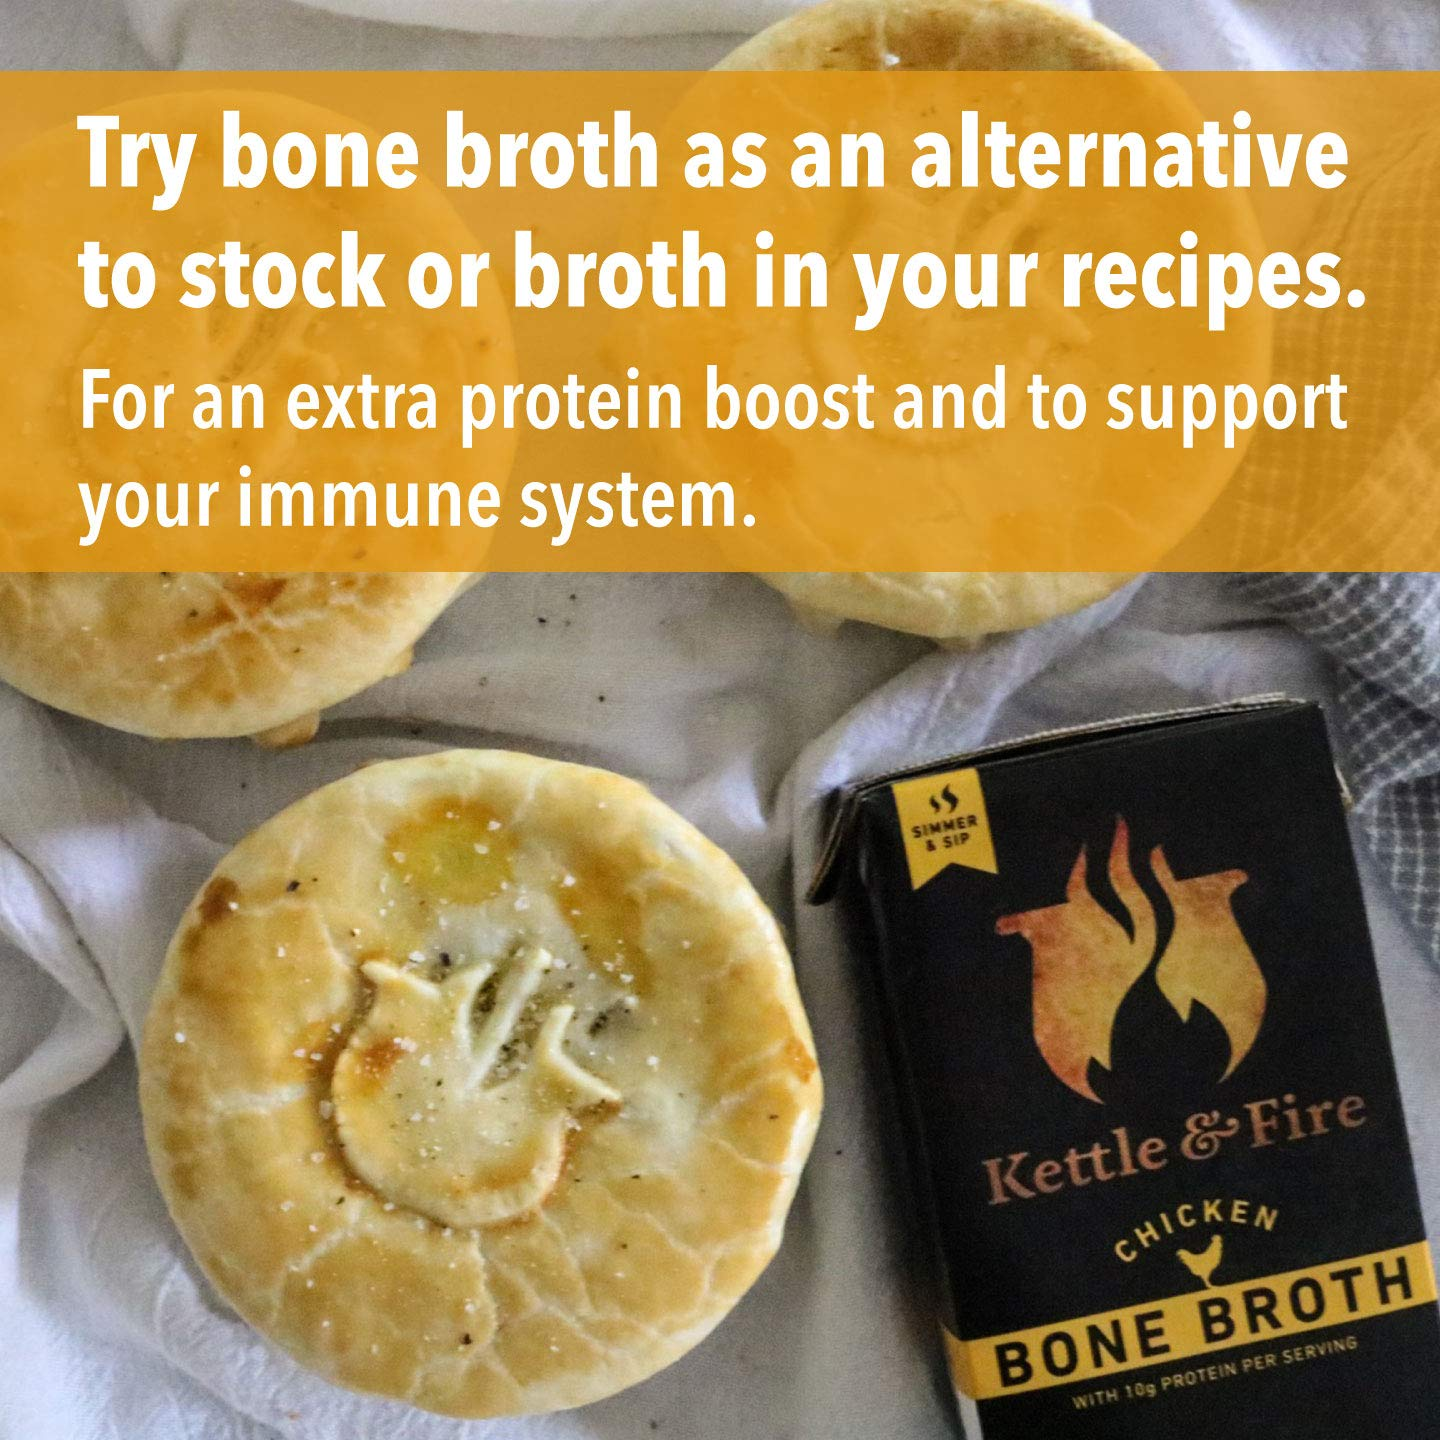 Chicken Bone Broth Soup by Kettle and Fire, Pack of 4, Keto Diet, Paleo Friendly, Whole 30 Approved, Gluten Free, with Collagen, 10g of protein, 16.2 fl oz by Kettle & Fire (Image #2)